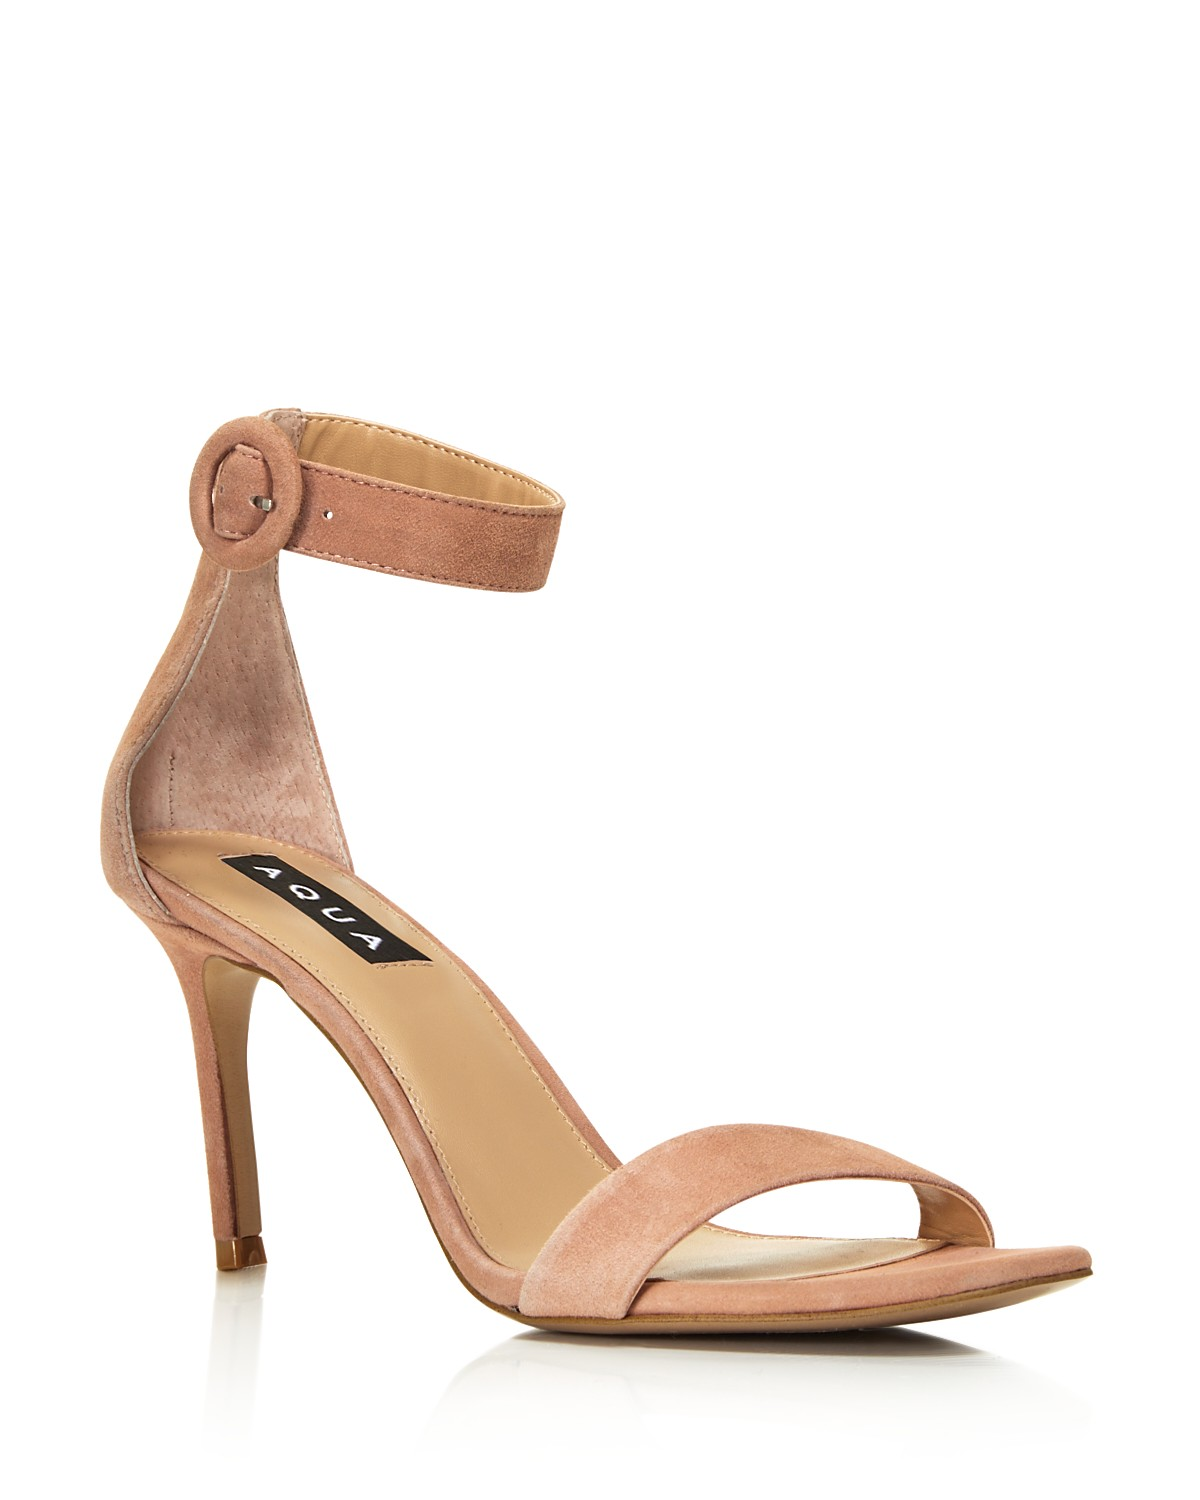 Original Online Discount Get To Buy Aqua Women's Seven Suede High-Heel Ankle Strap Sandals - 100% Exclusive Best Place To Buy Sale Visa Payment Fashion Style epbZ8P4